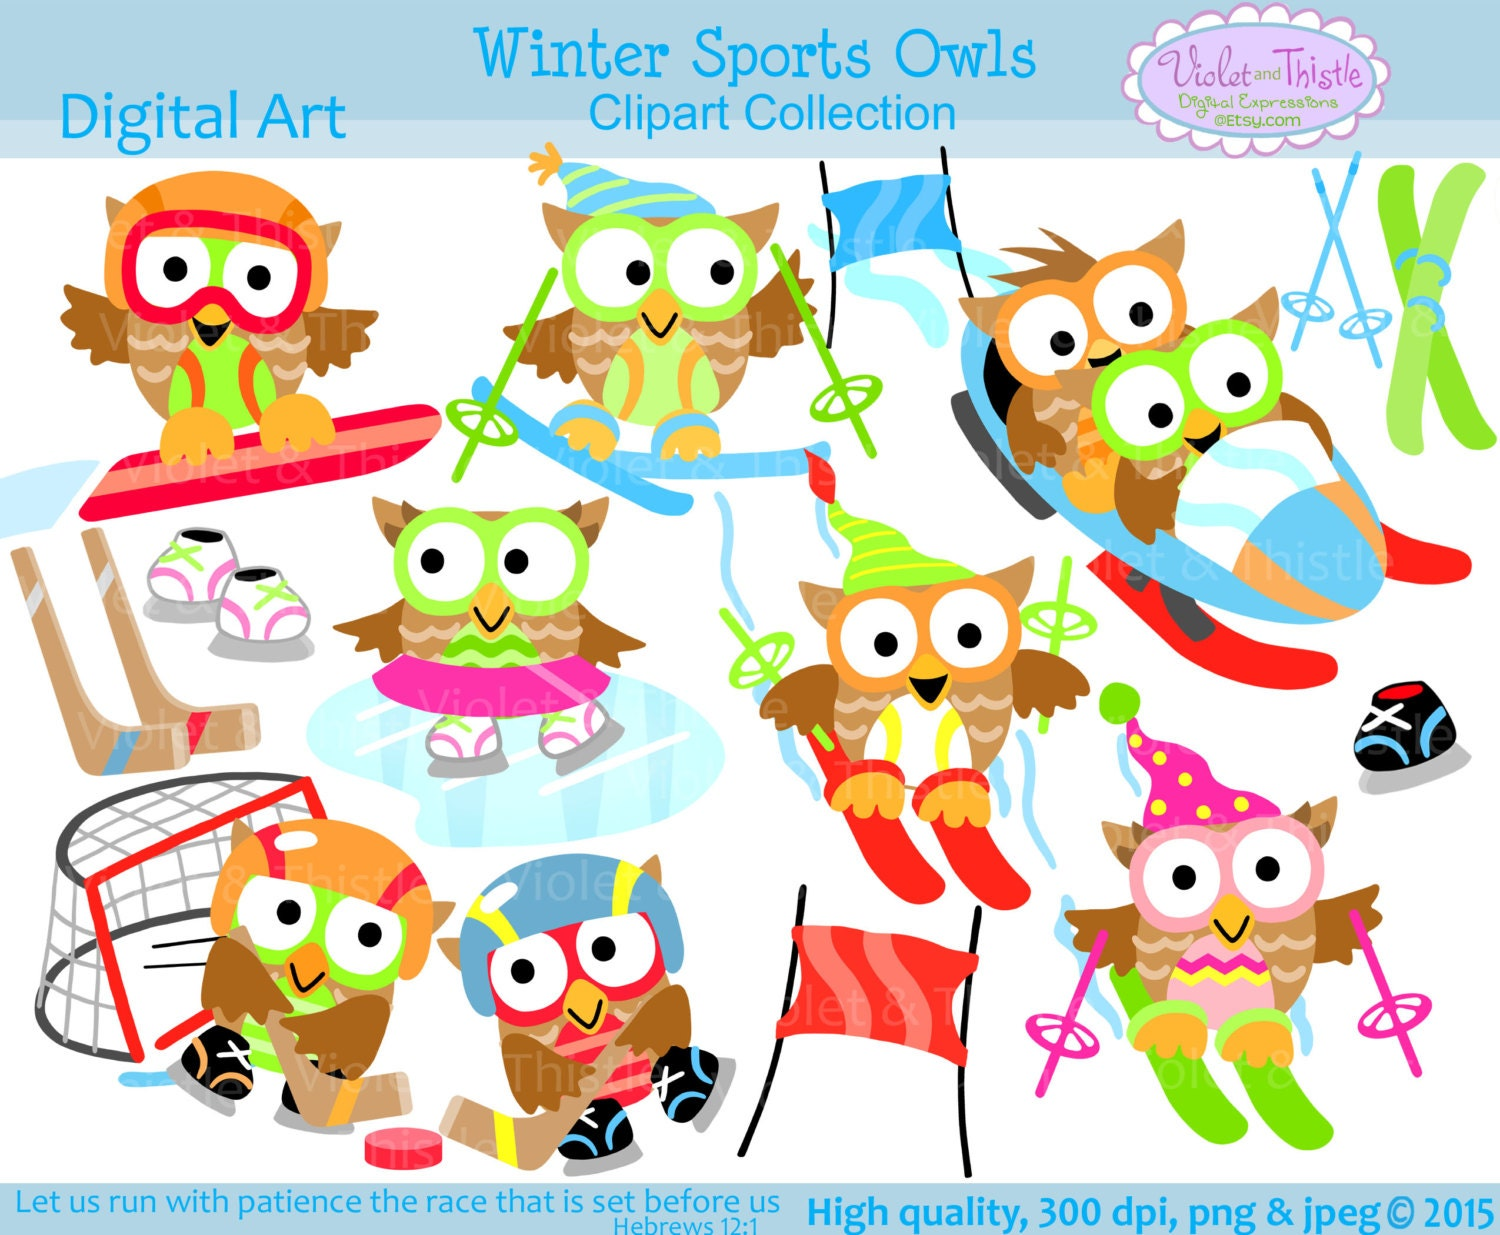 Winter Sports Owls Clip Art Clipart snowboarding ice skating